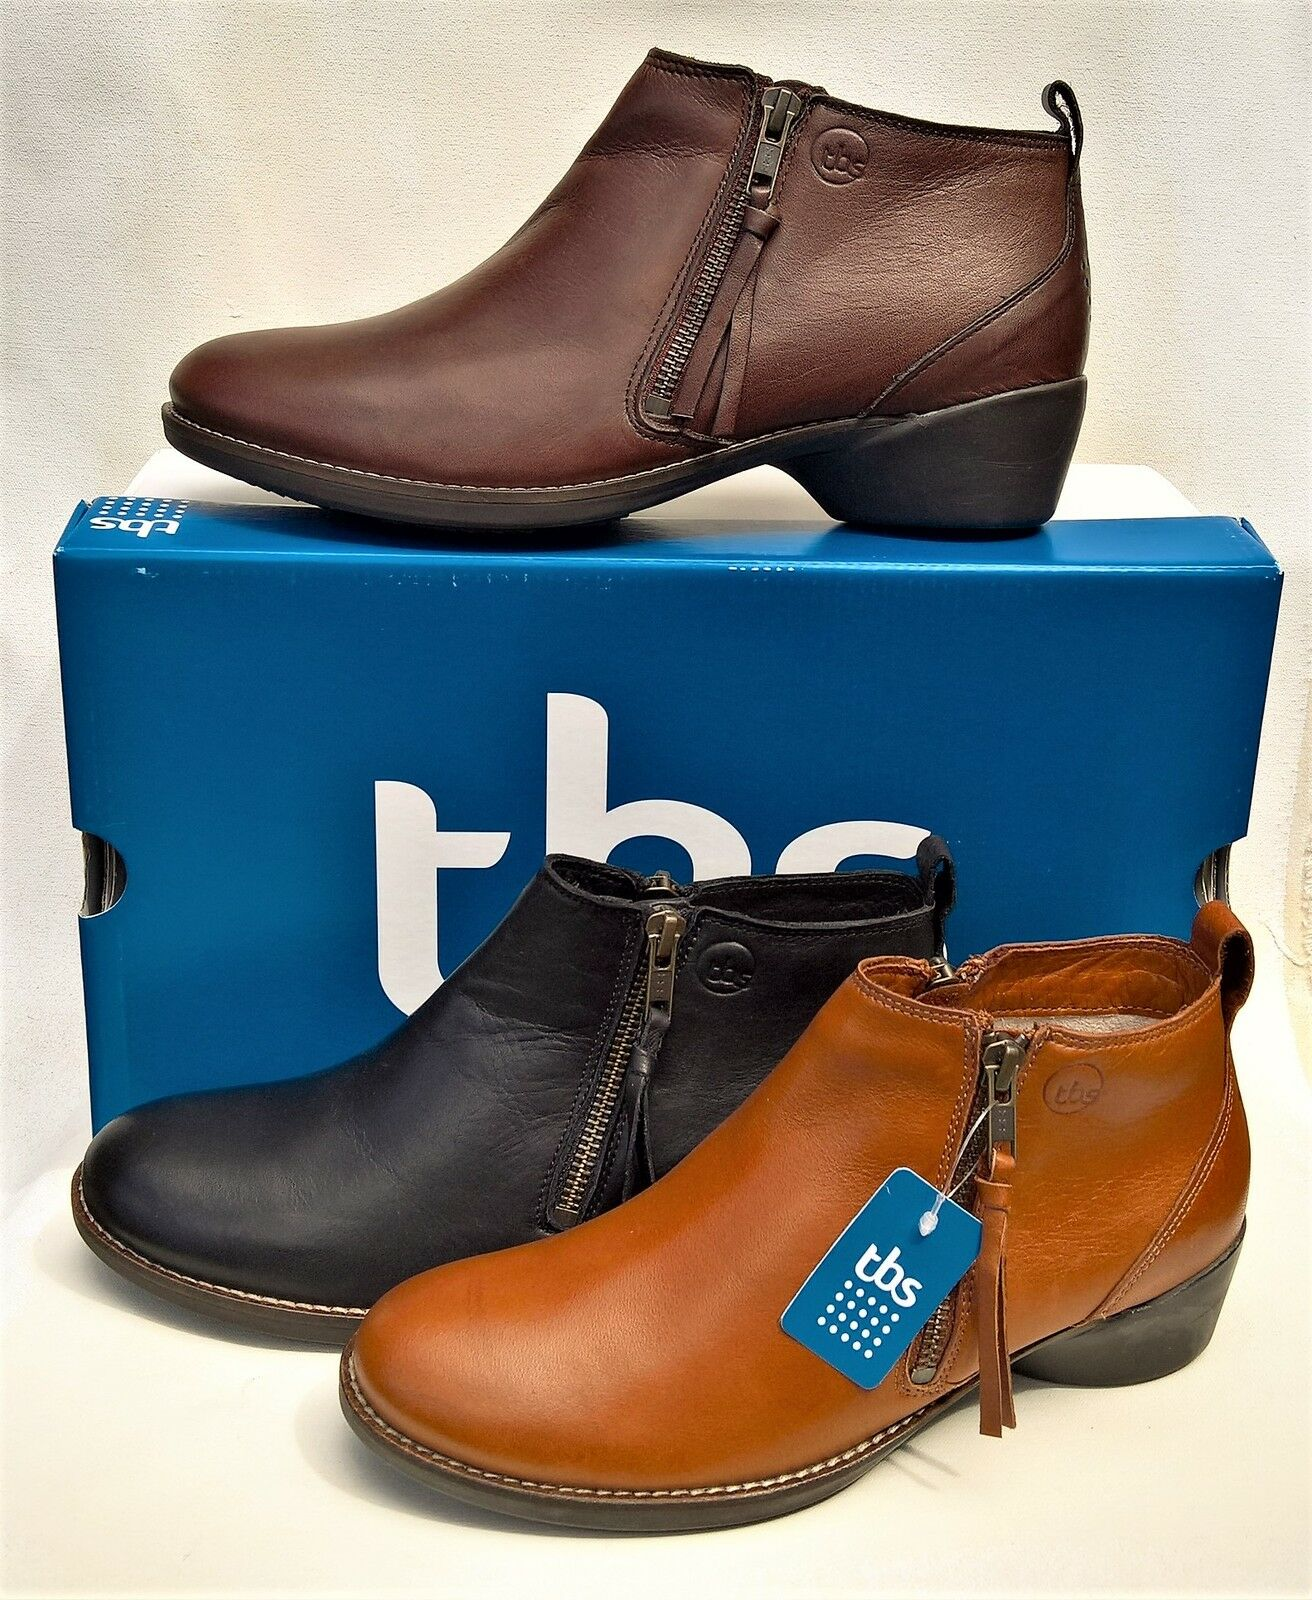 New Leather Ankle Boots - TBS shoes France France France Leather - Girlye bda27d